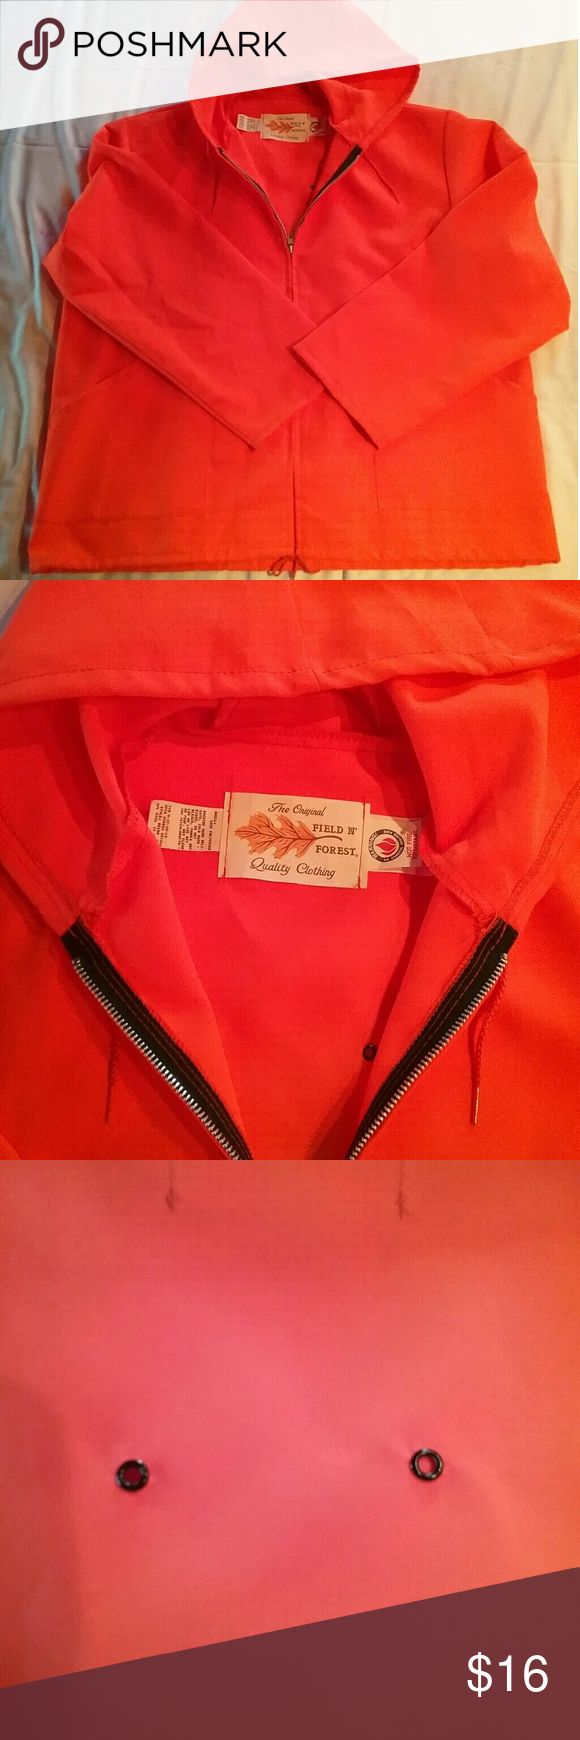 Field and Forest Hunting Jacket Like new Field and Forest Hunting Jacket, lightweight, blaze orange with breathing holes in back Field and Forest Jackets & Coats